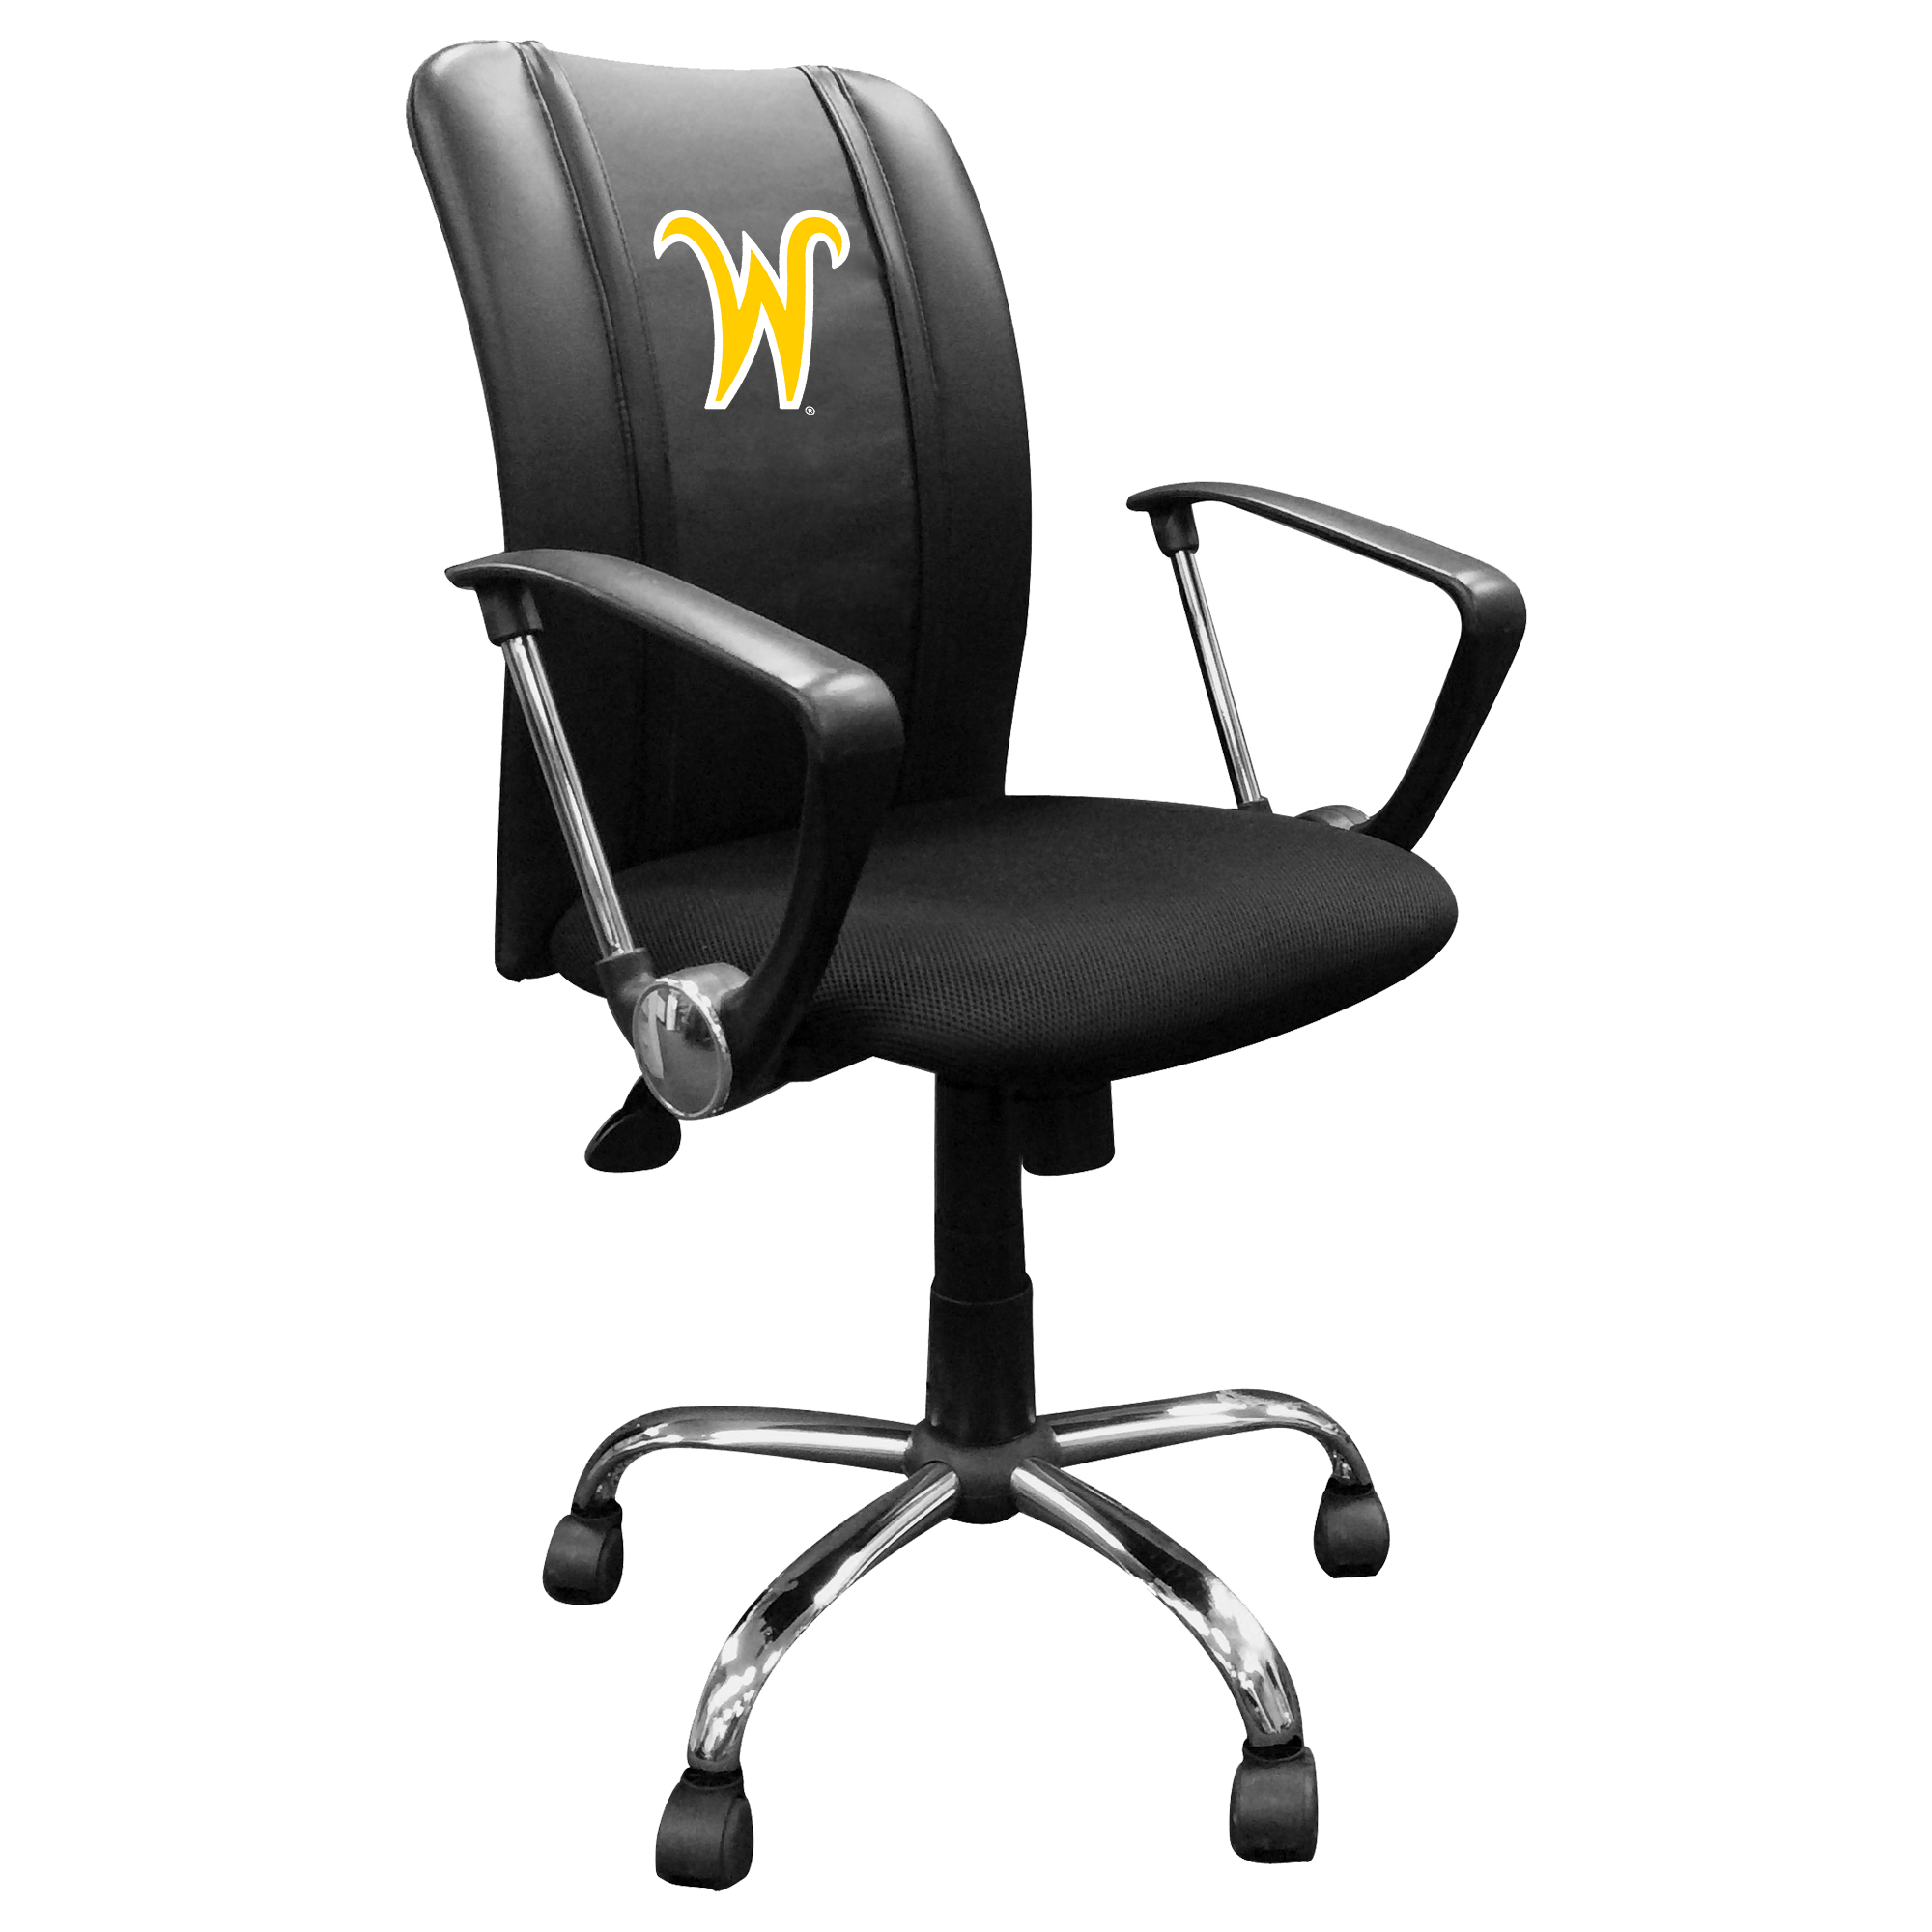 Curve Task Chair with Wichita State Secondary Logo